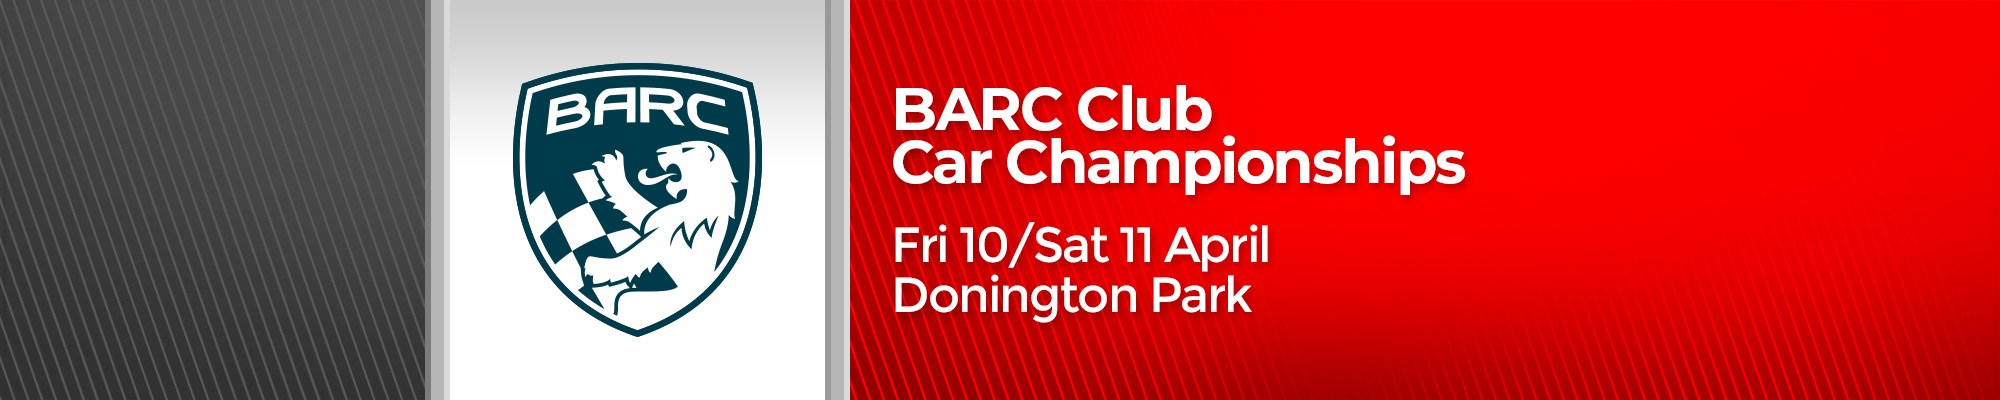 BARC Club Car Championships - POSTPONED